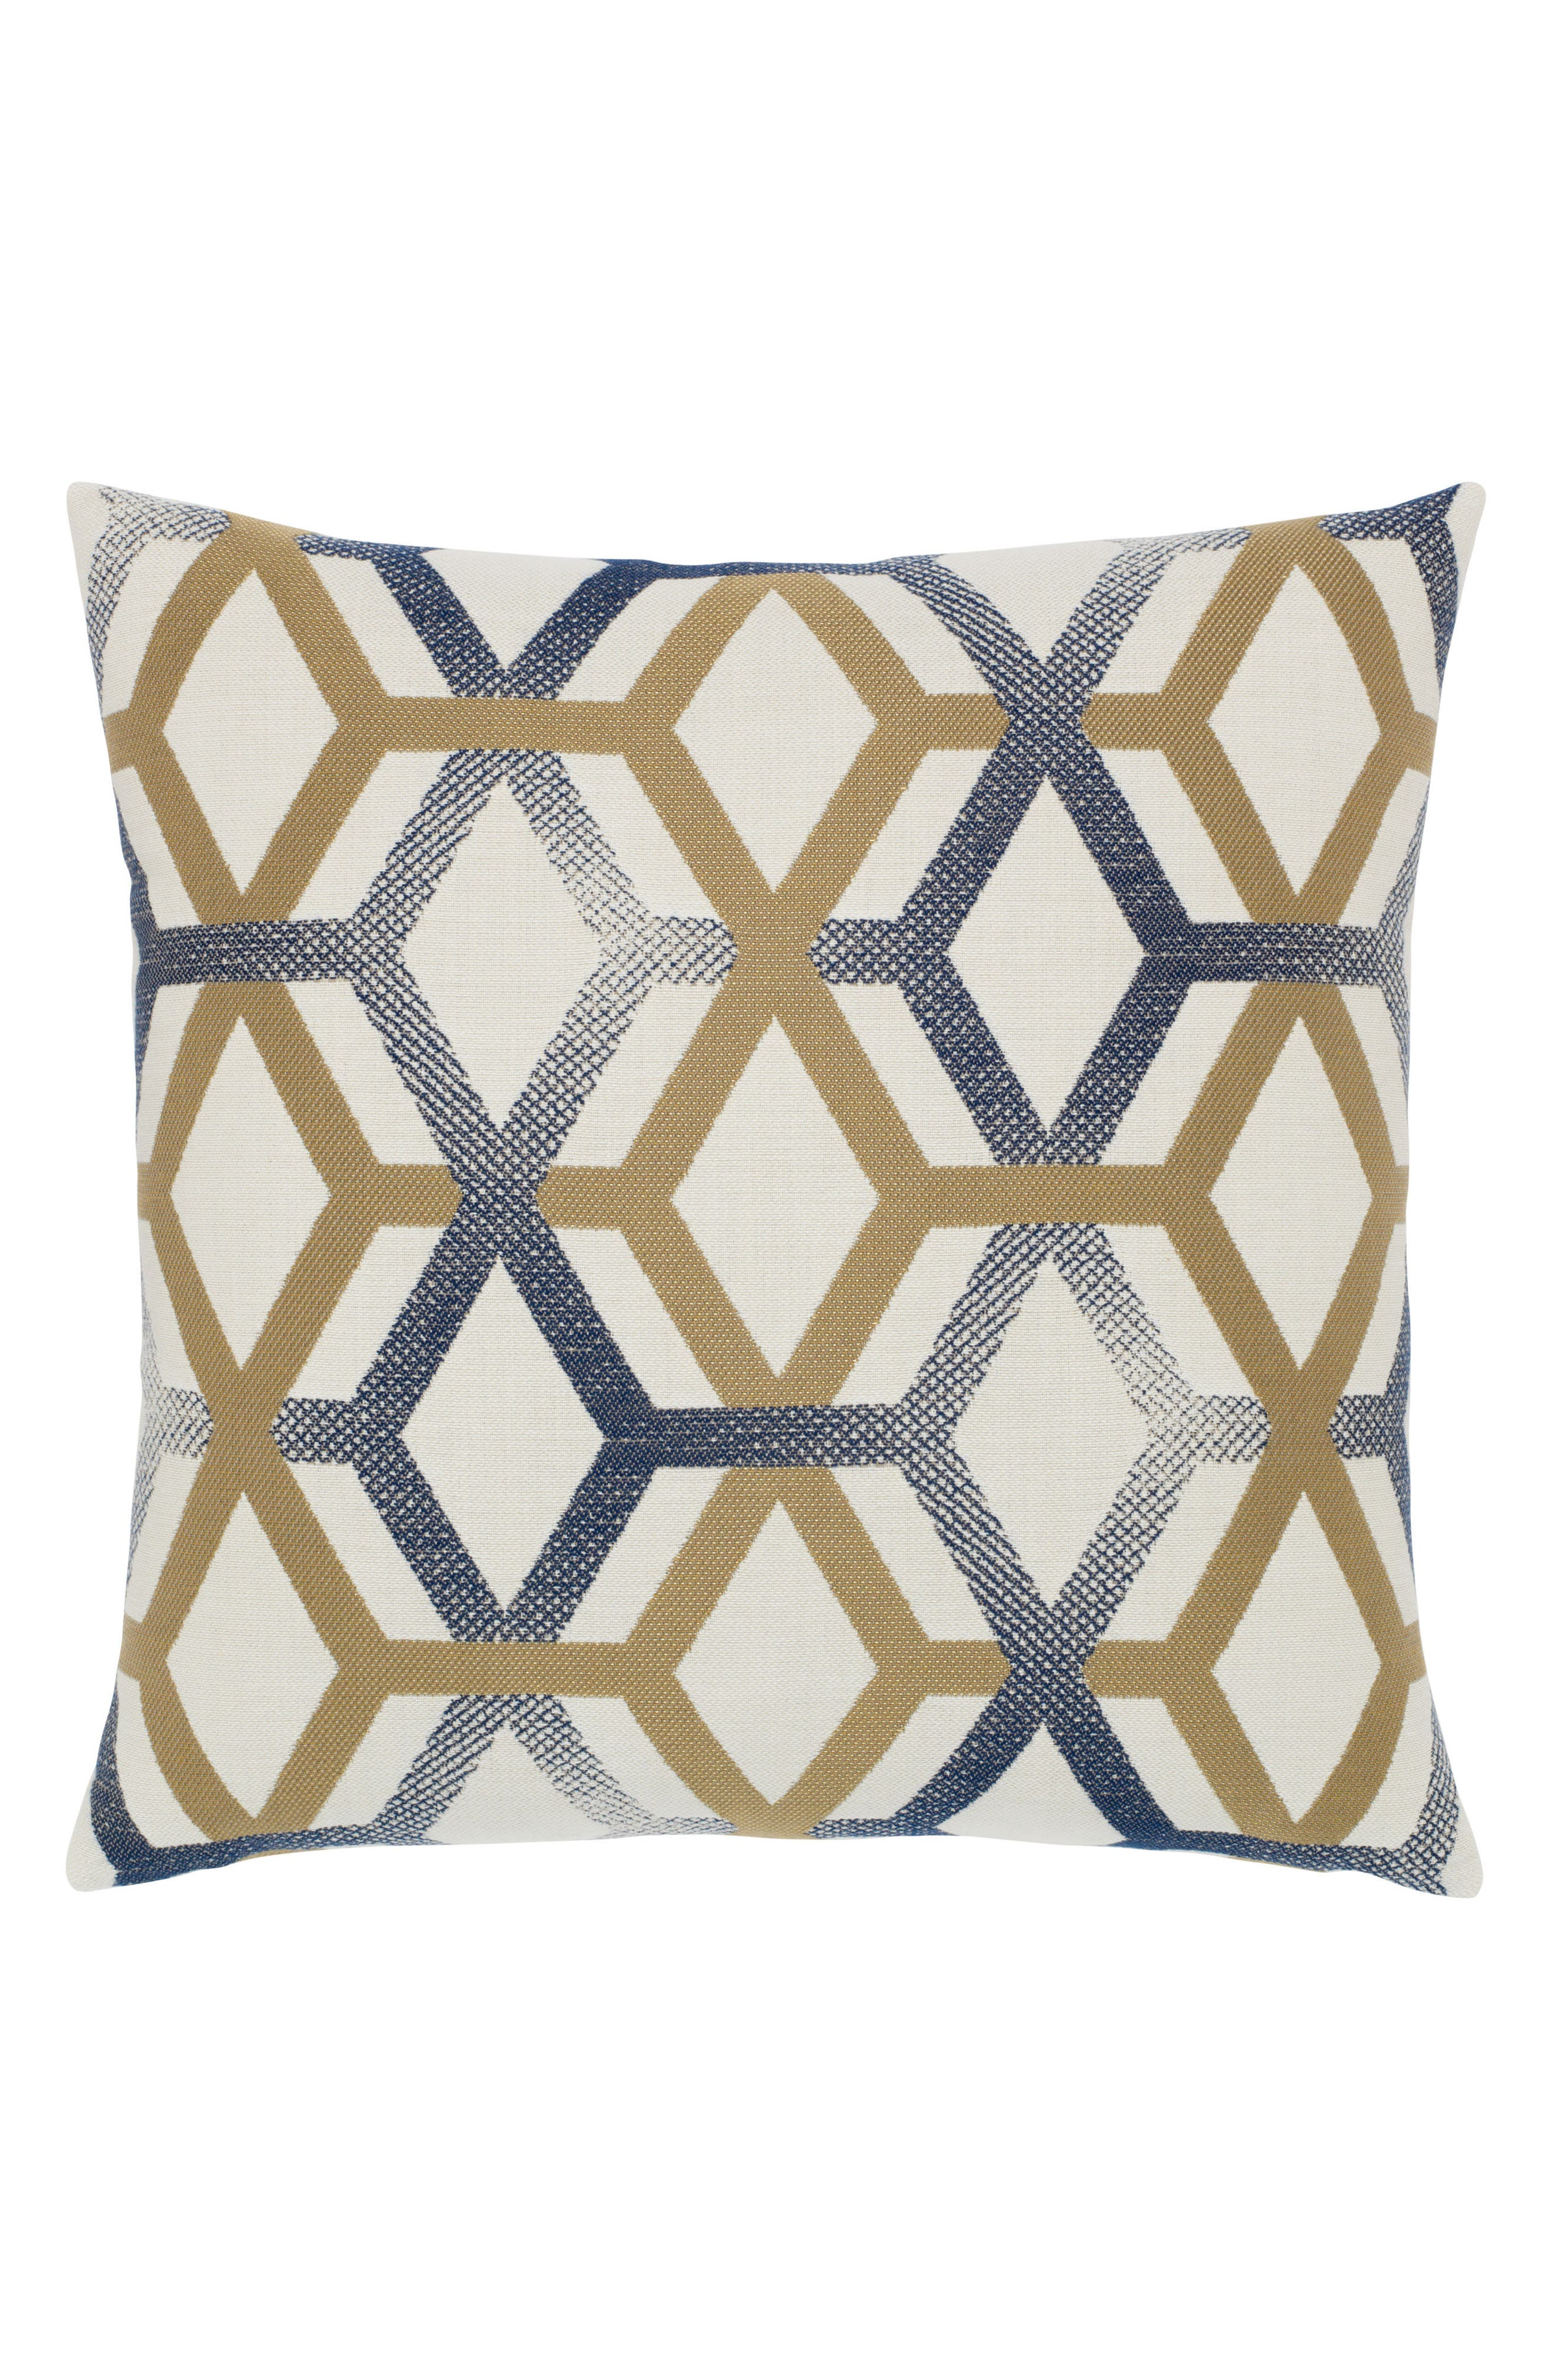 Luminous Lines Indoor/Outdoor Accent Pillow,                             Main thumbnail 1, color,                             WHITE/ BLUE